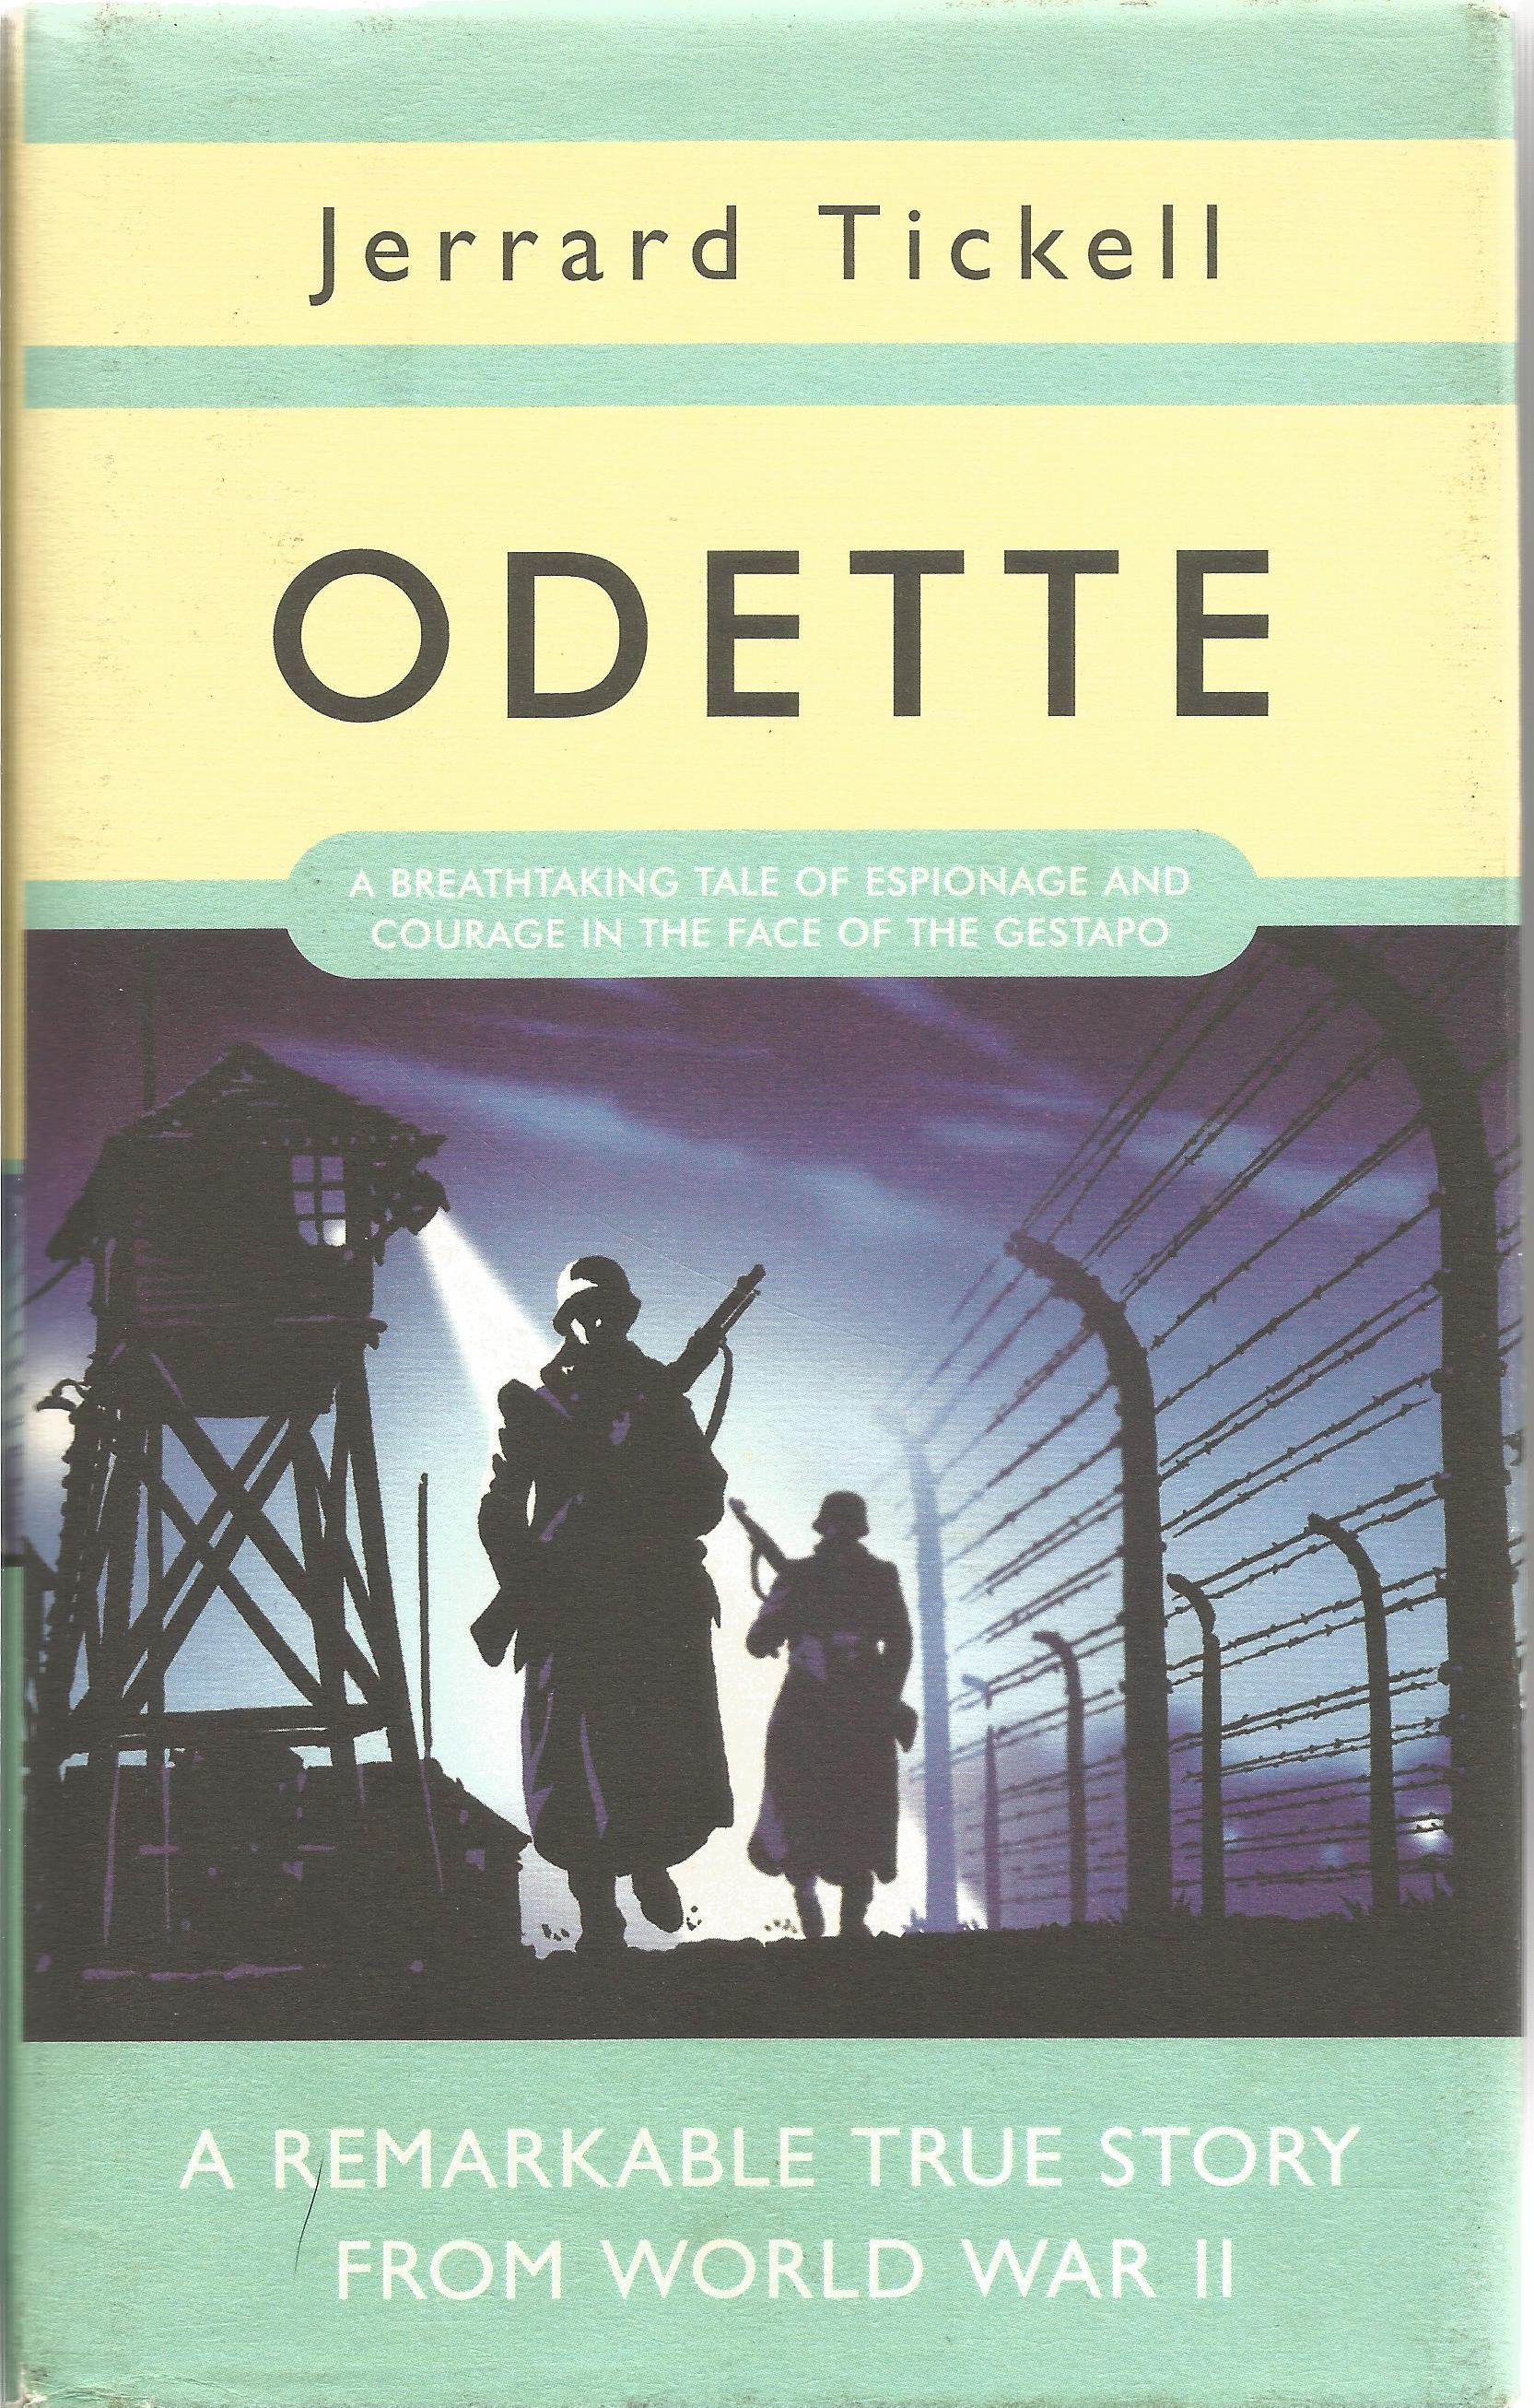 Jerrard Tickell. Odette. A Breathtaking Tale Of Espionage and Courage in the Face Of The Gestapo.